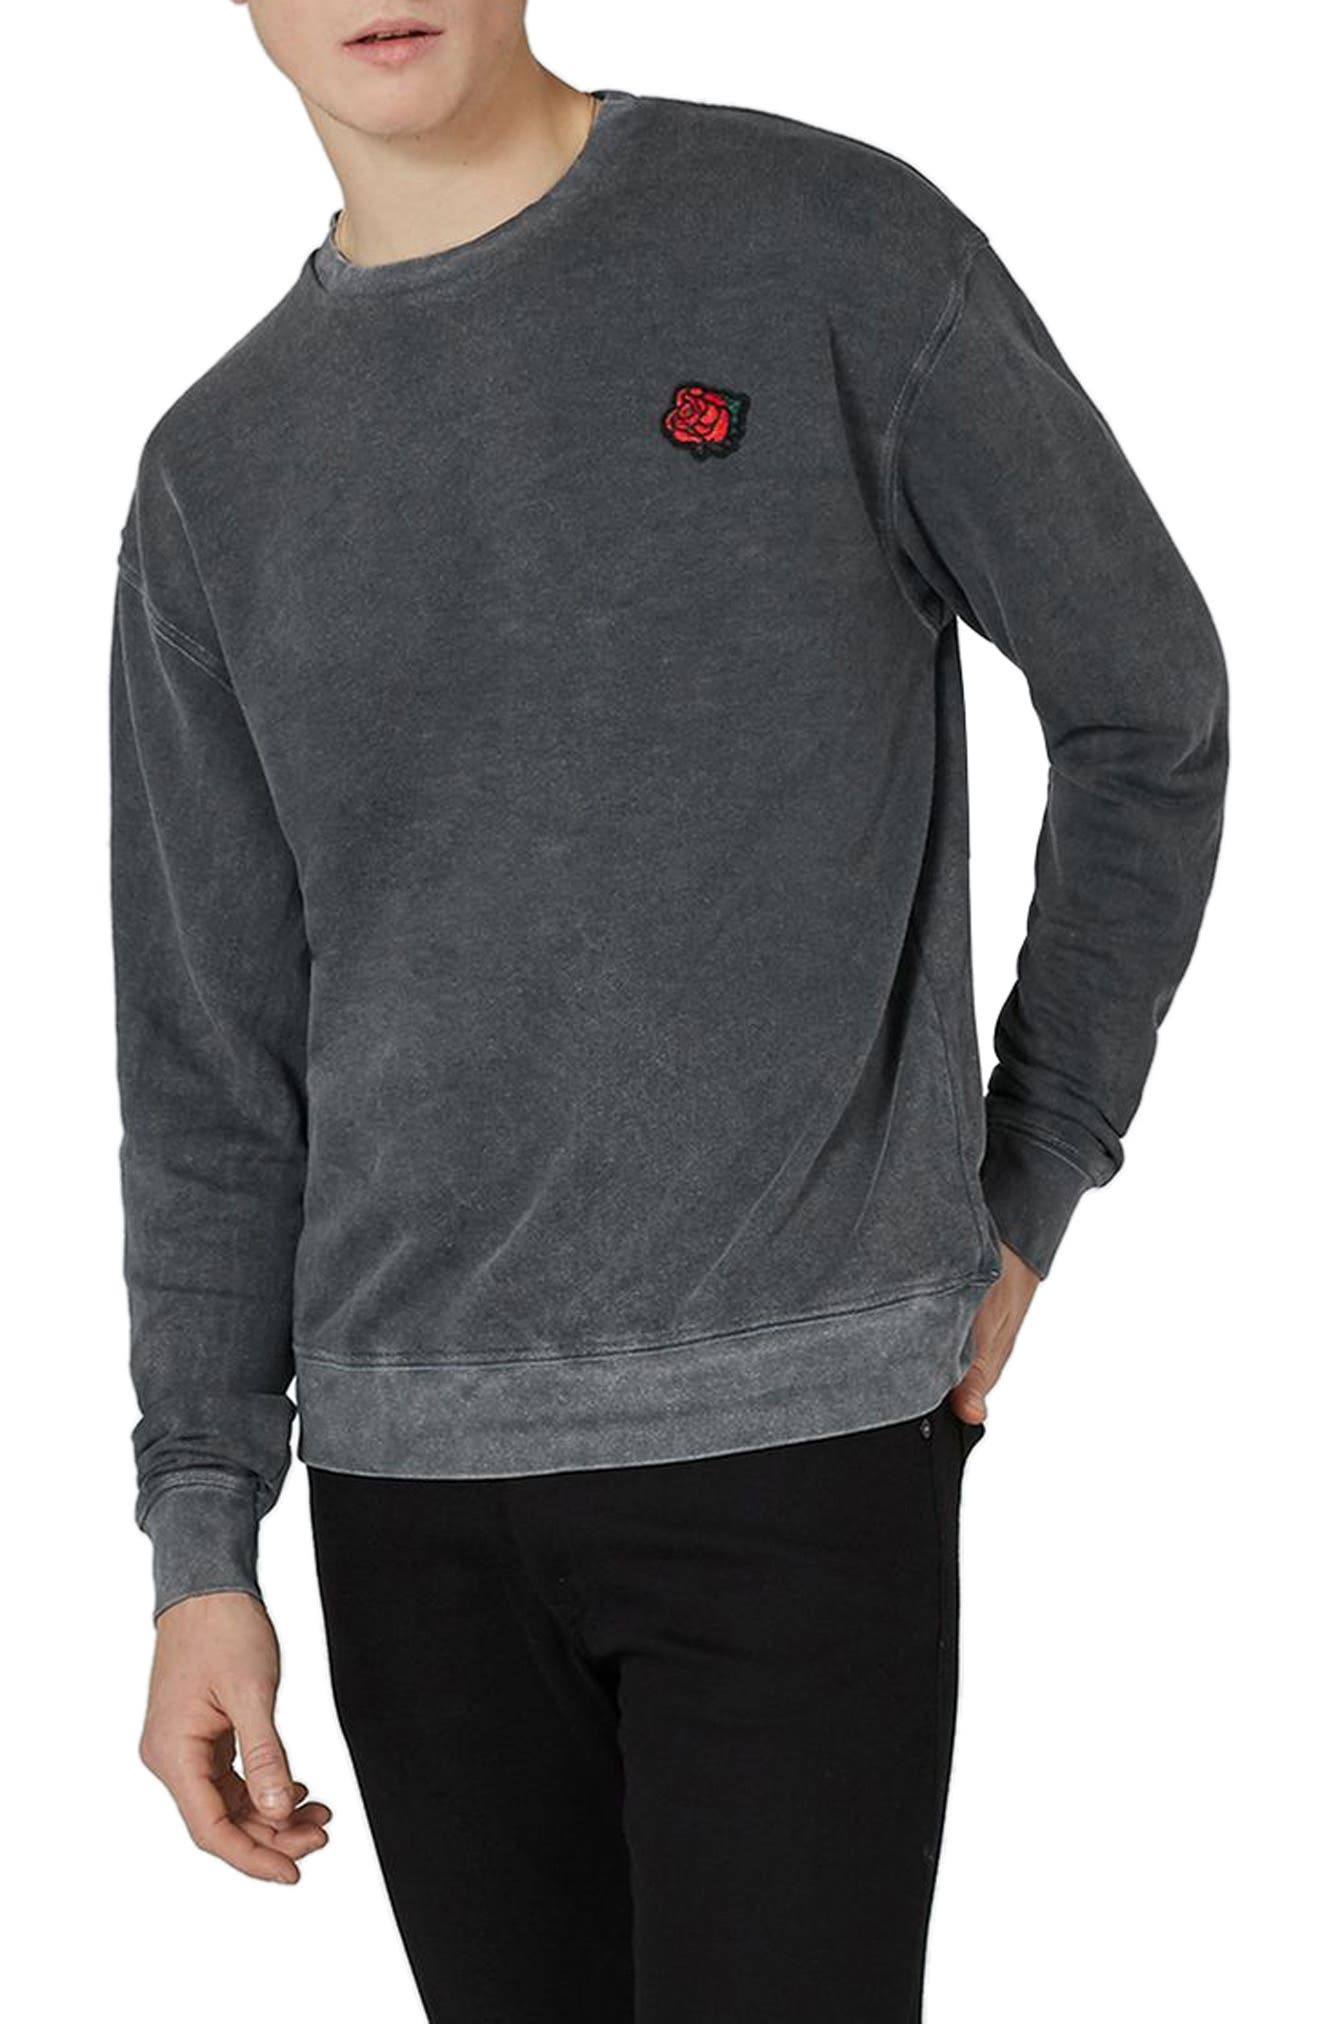 Percy Rose Embroidered Sweatshirt,                         Main,                         color, 020